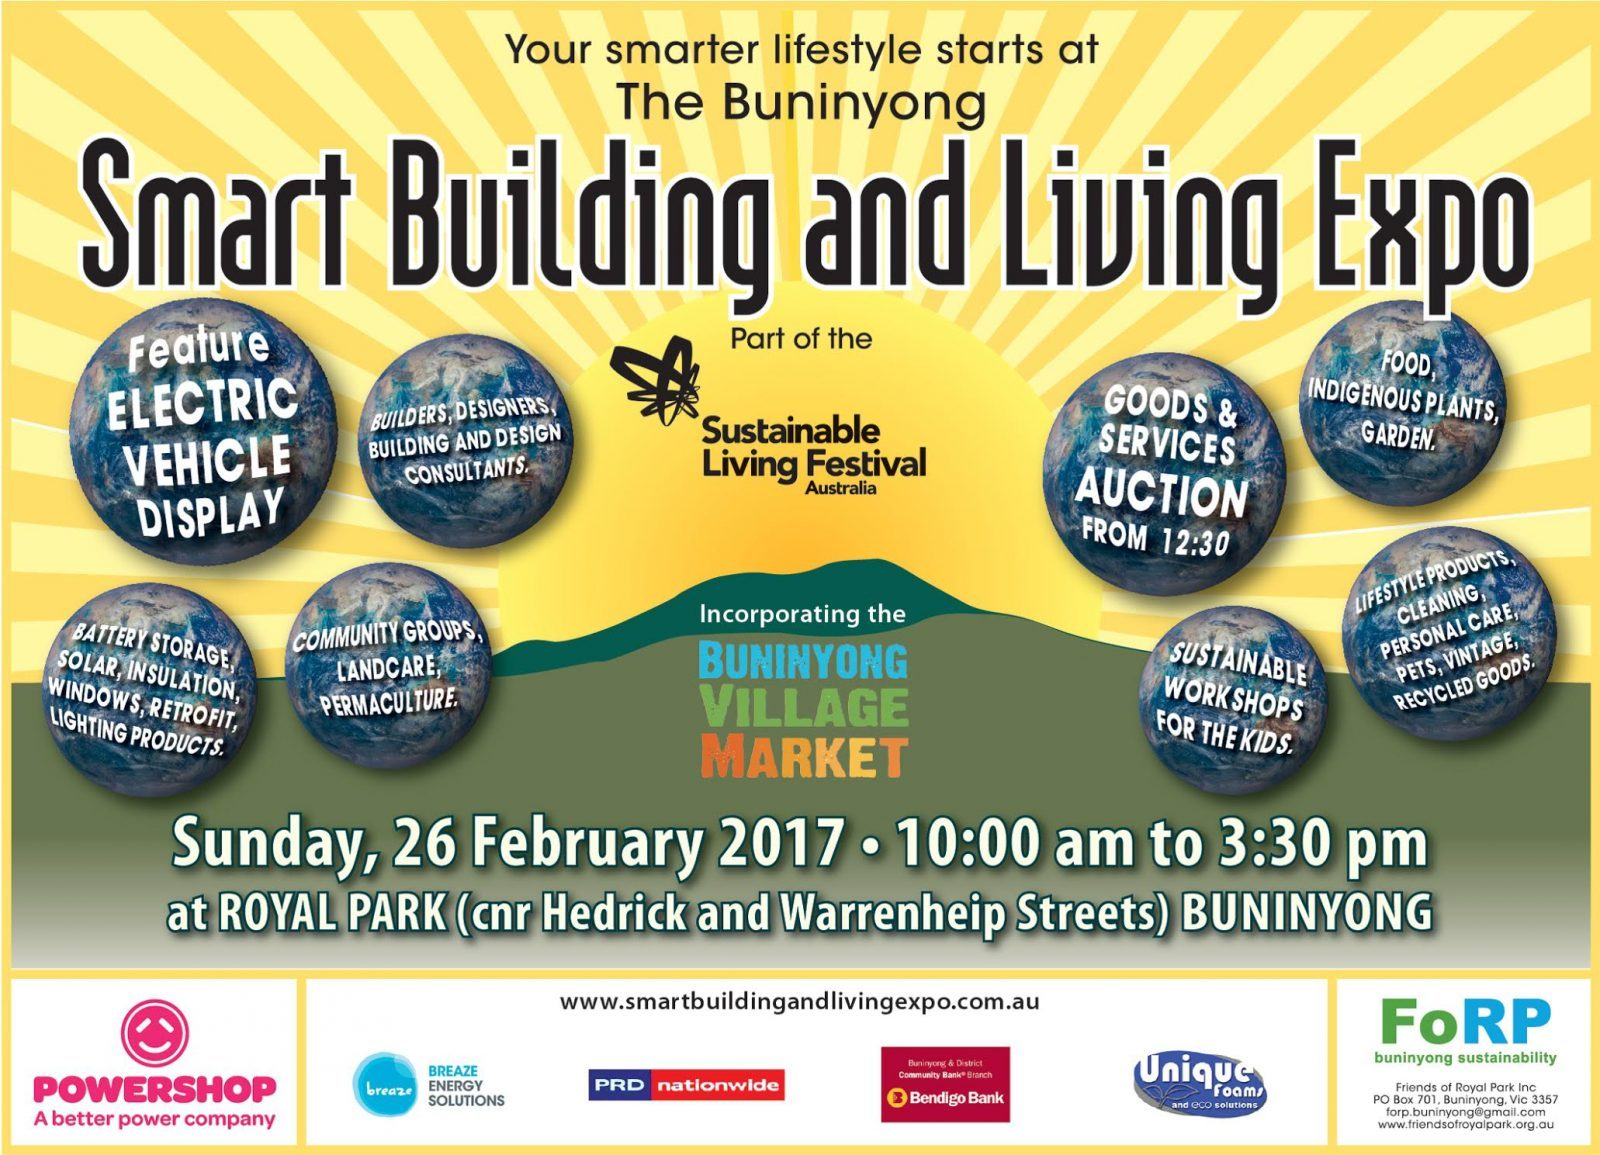 COME AND SEE US AT THE SUSTAINABLE BUILDING & LIVING FESTIVAL